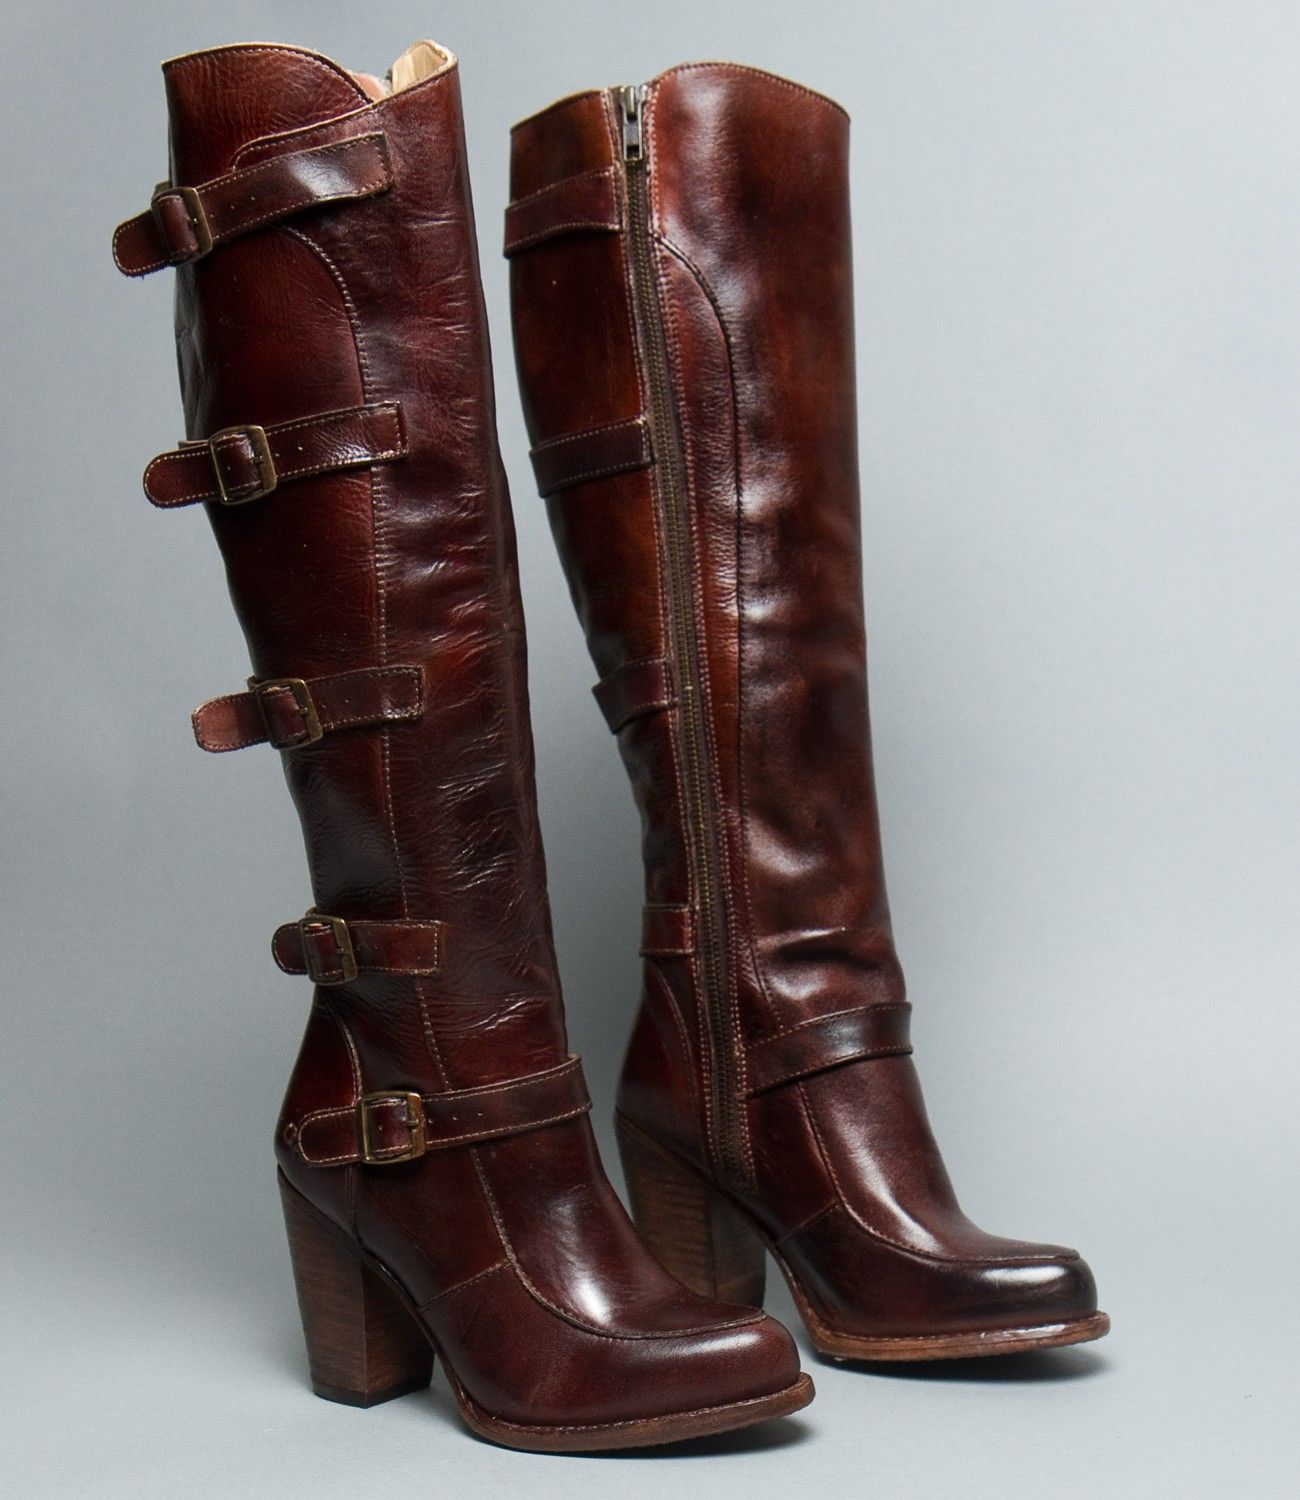 Genuince Bed Stu Turn Teak Rustic - Boots For Women R3989nz1400